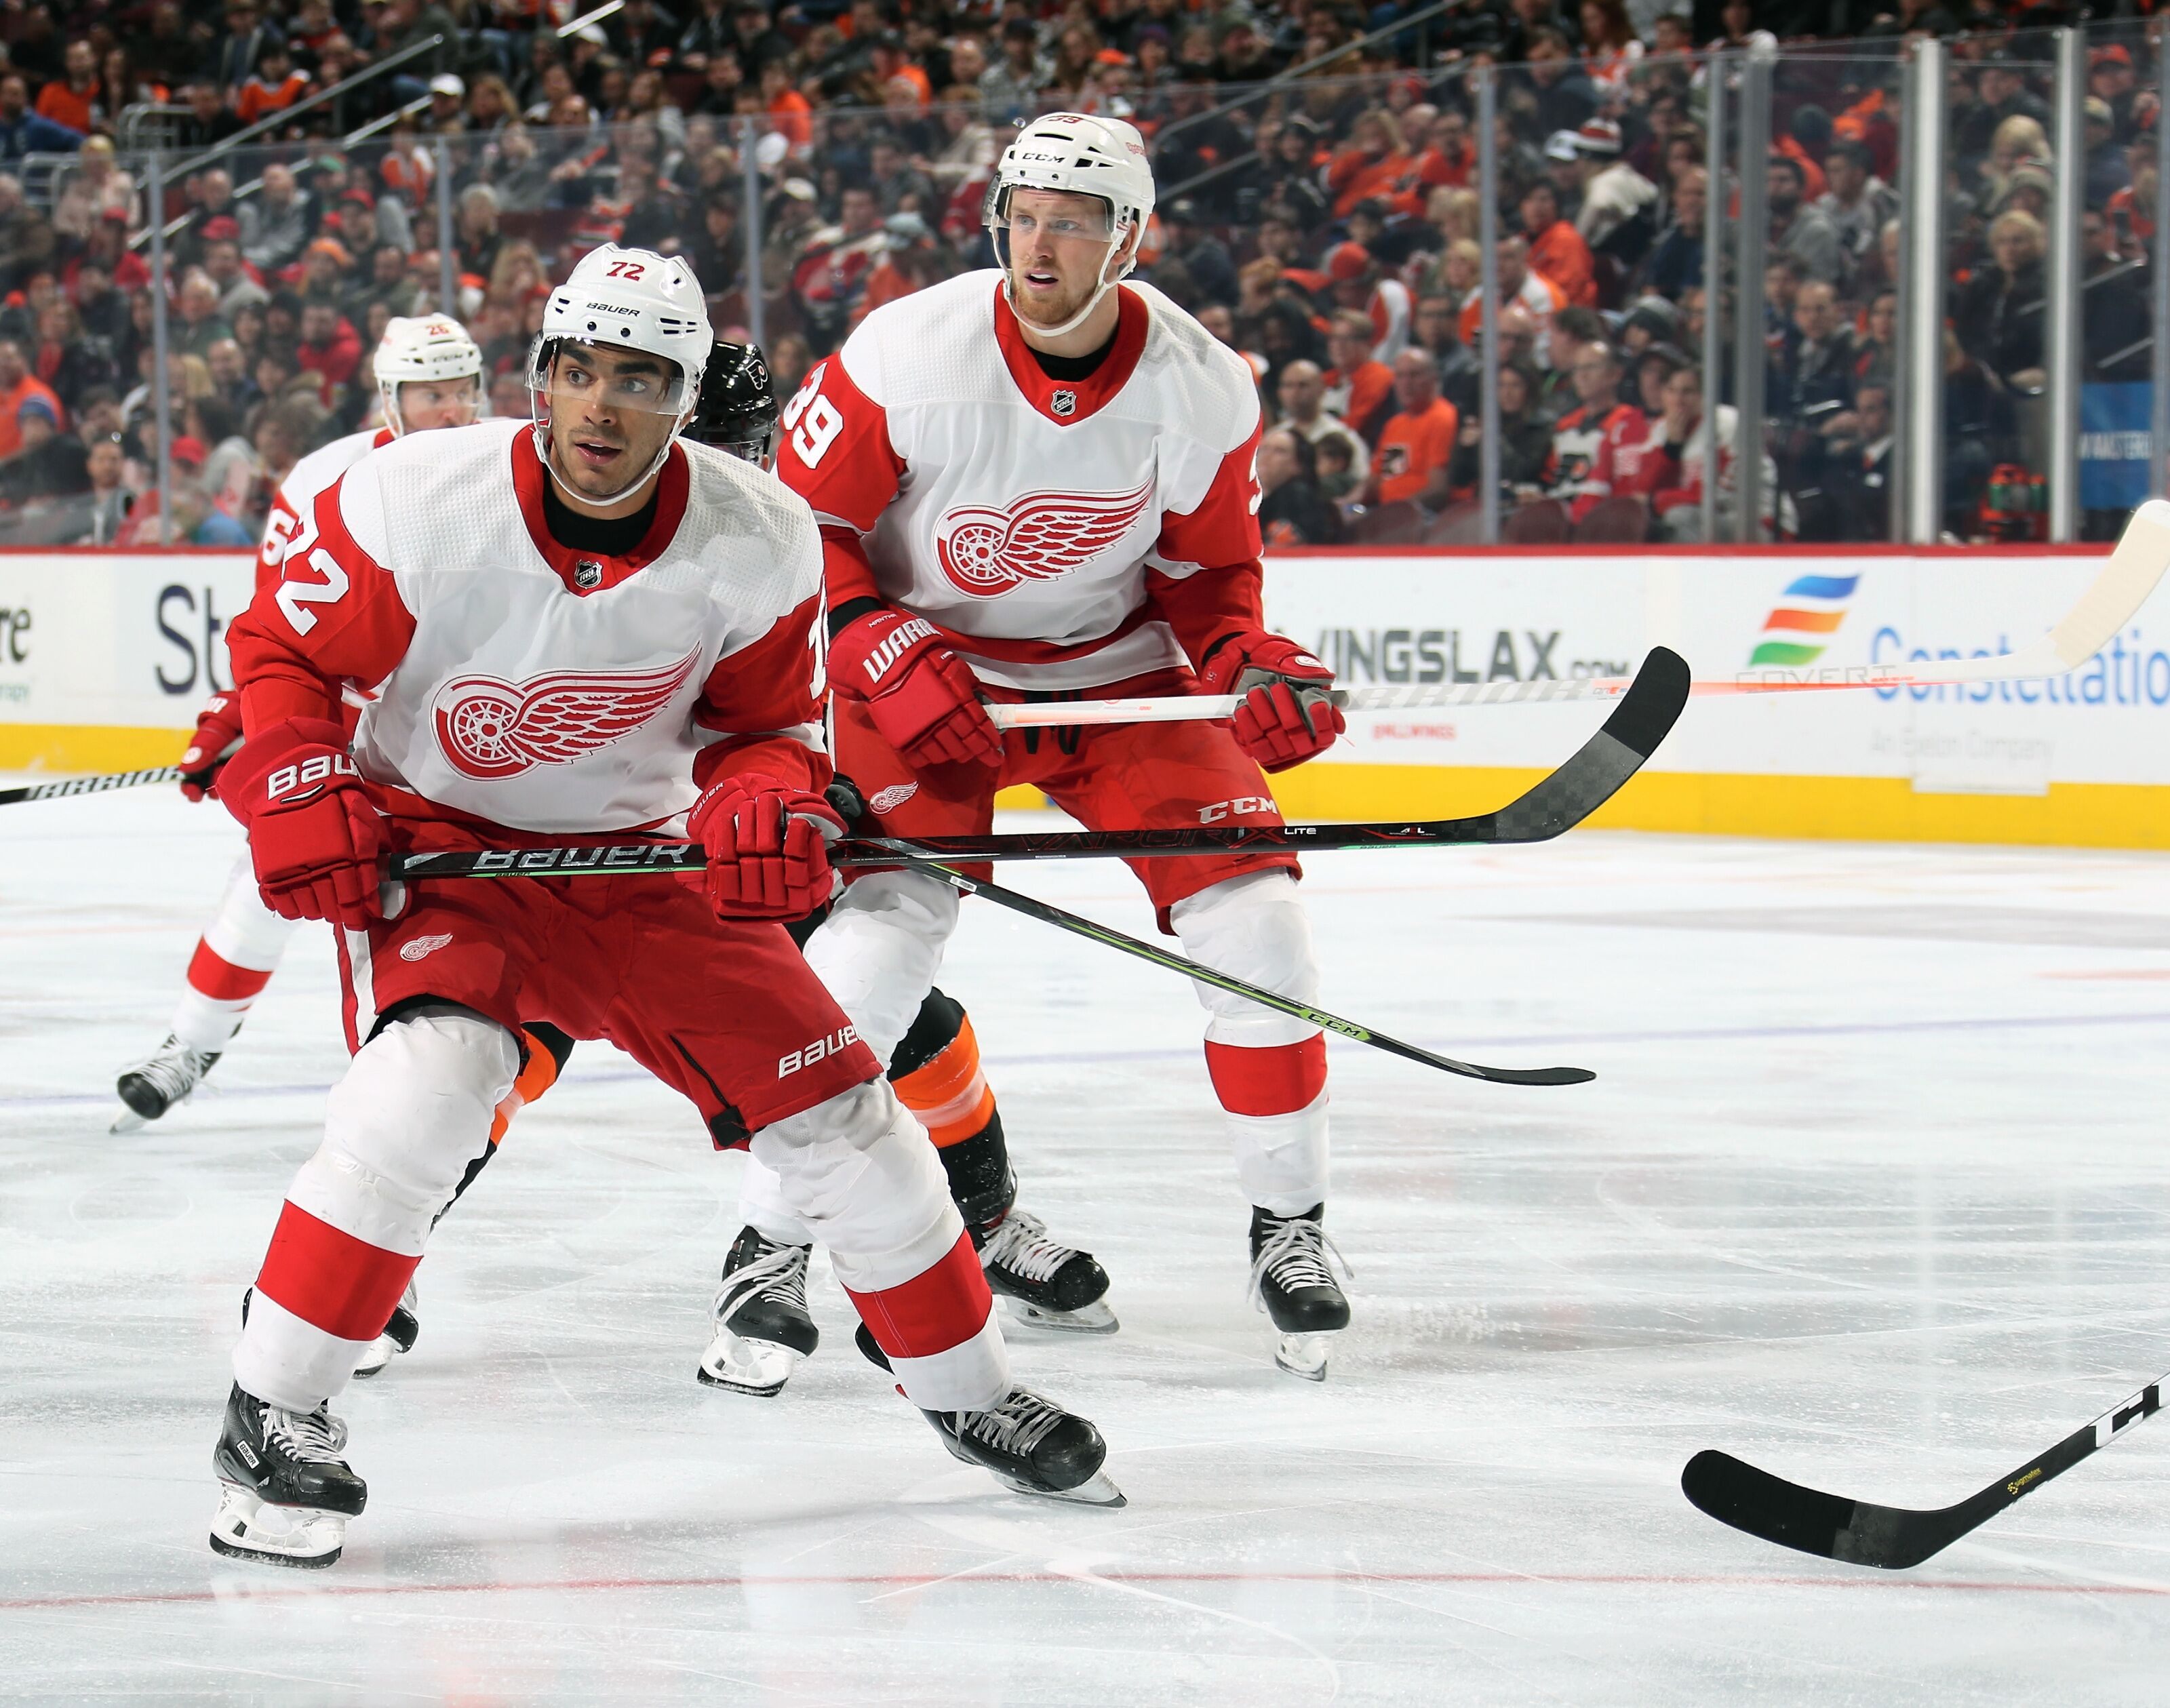 Detroit Red Wings: The comeback kids were at it again